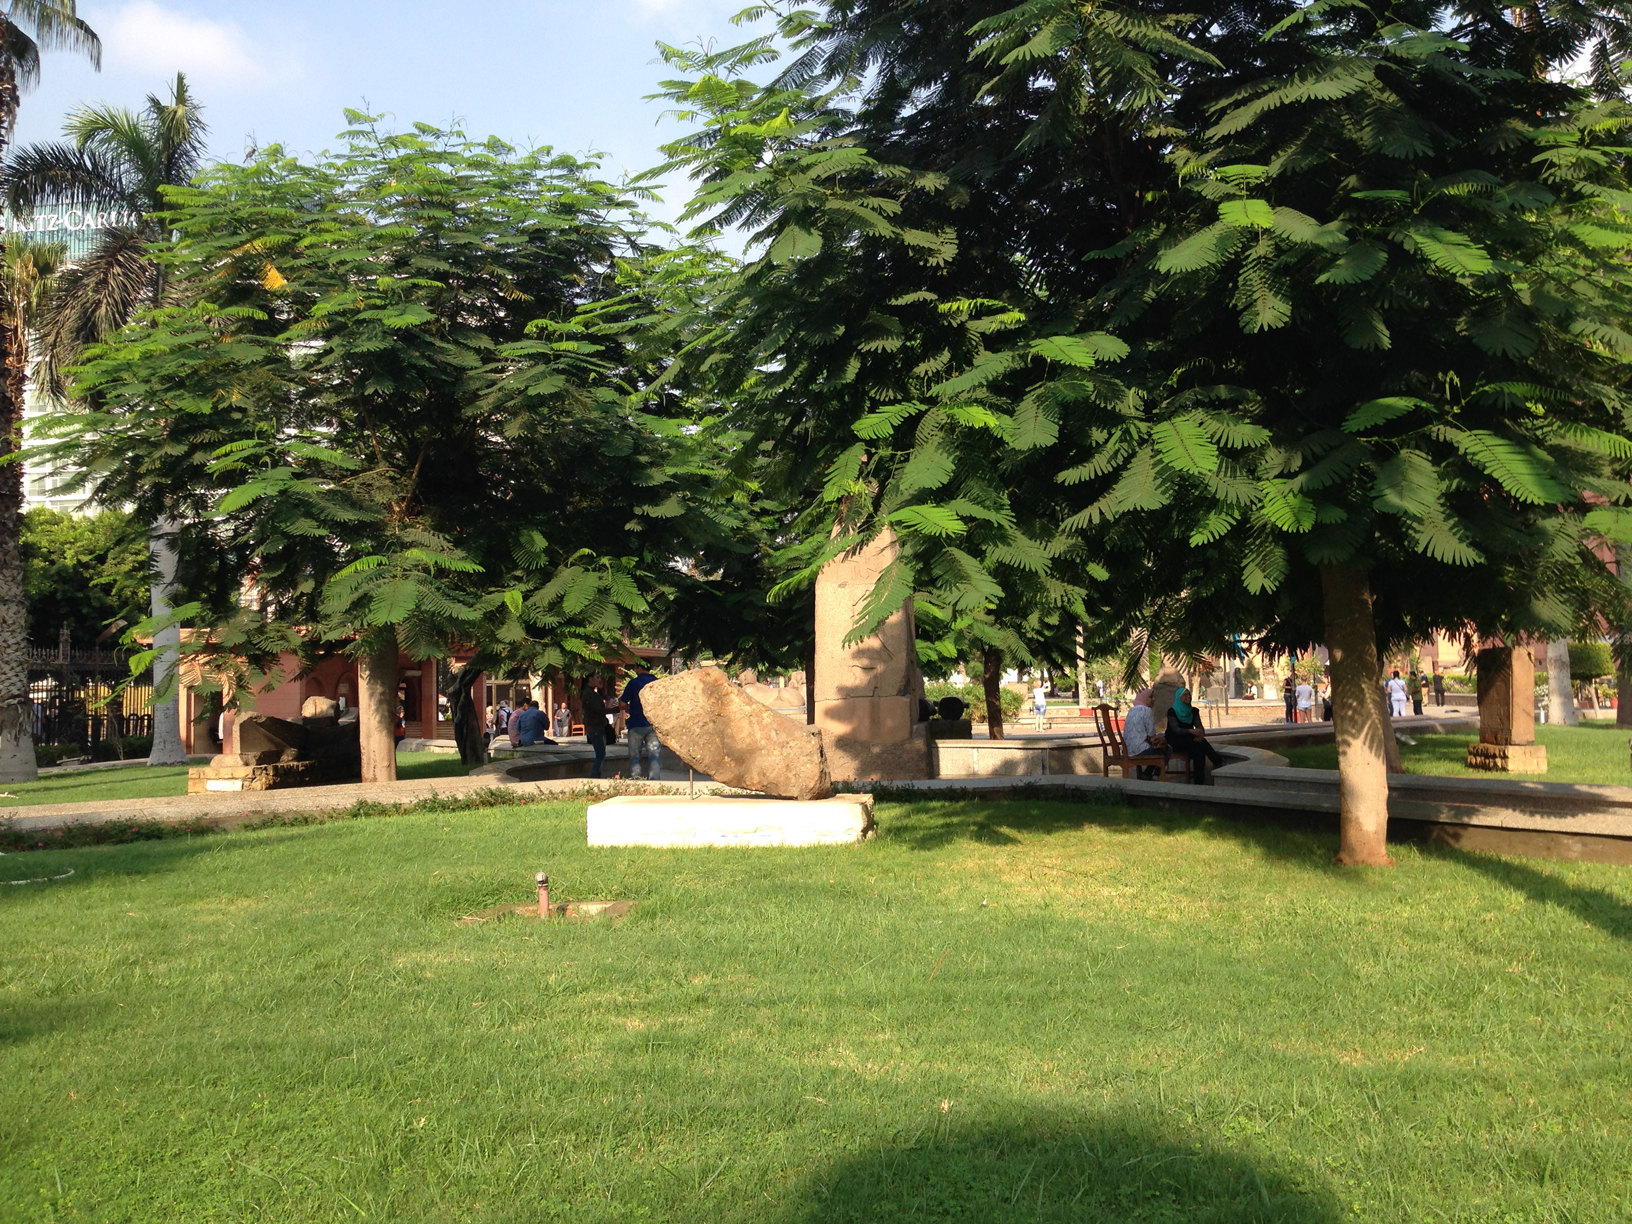 In the garden of the Egyptian museum